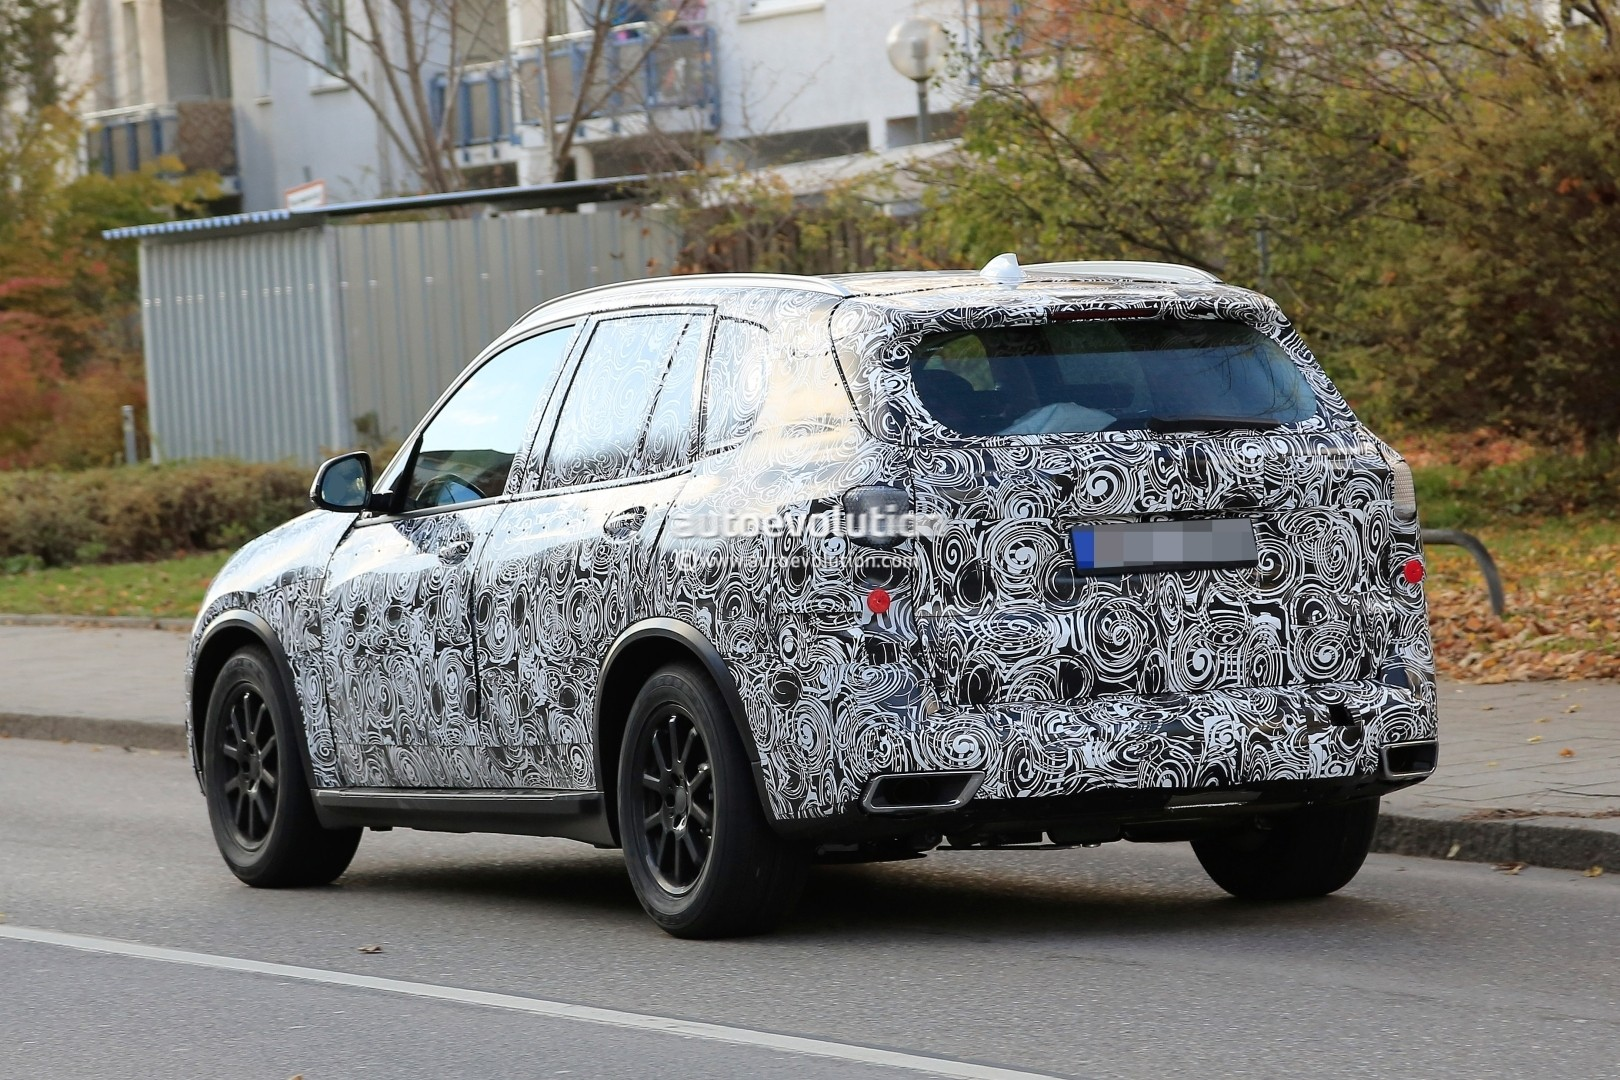 2018 - [BMW] X5 IV [G05] - Page 2 2018-bmw-x5-pre-production-prototype-first-spyshtos-reveal-huge-kidney-grilles_18